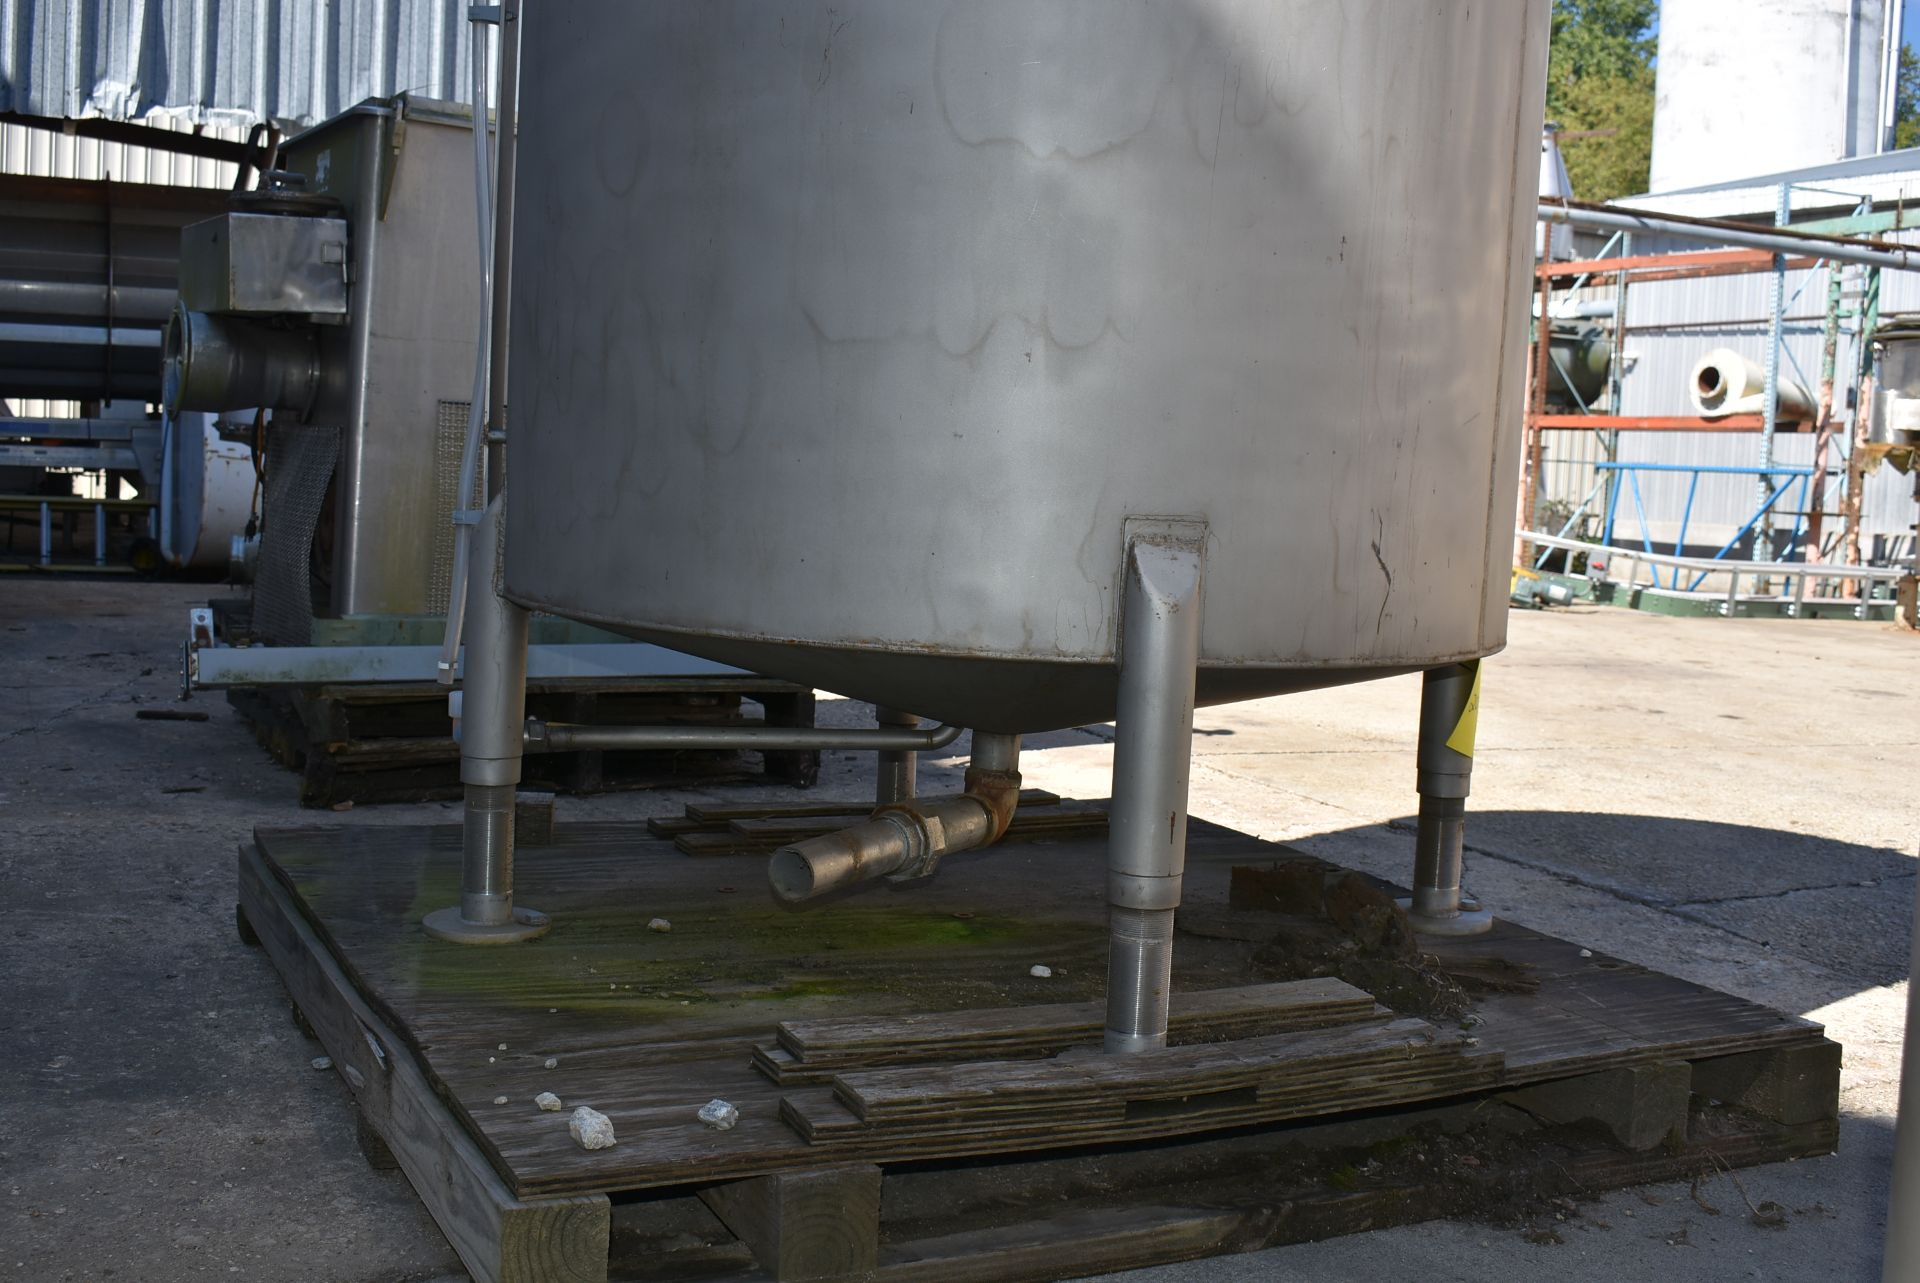 """Stainless Steel Tank, Rated 400 Gallons, 48"""" Diameter x 60"""" - Image 4 of 5"""